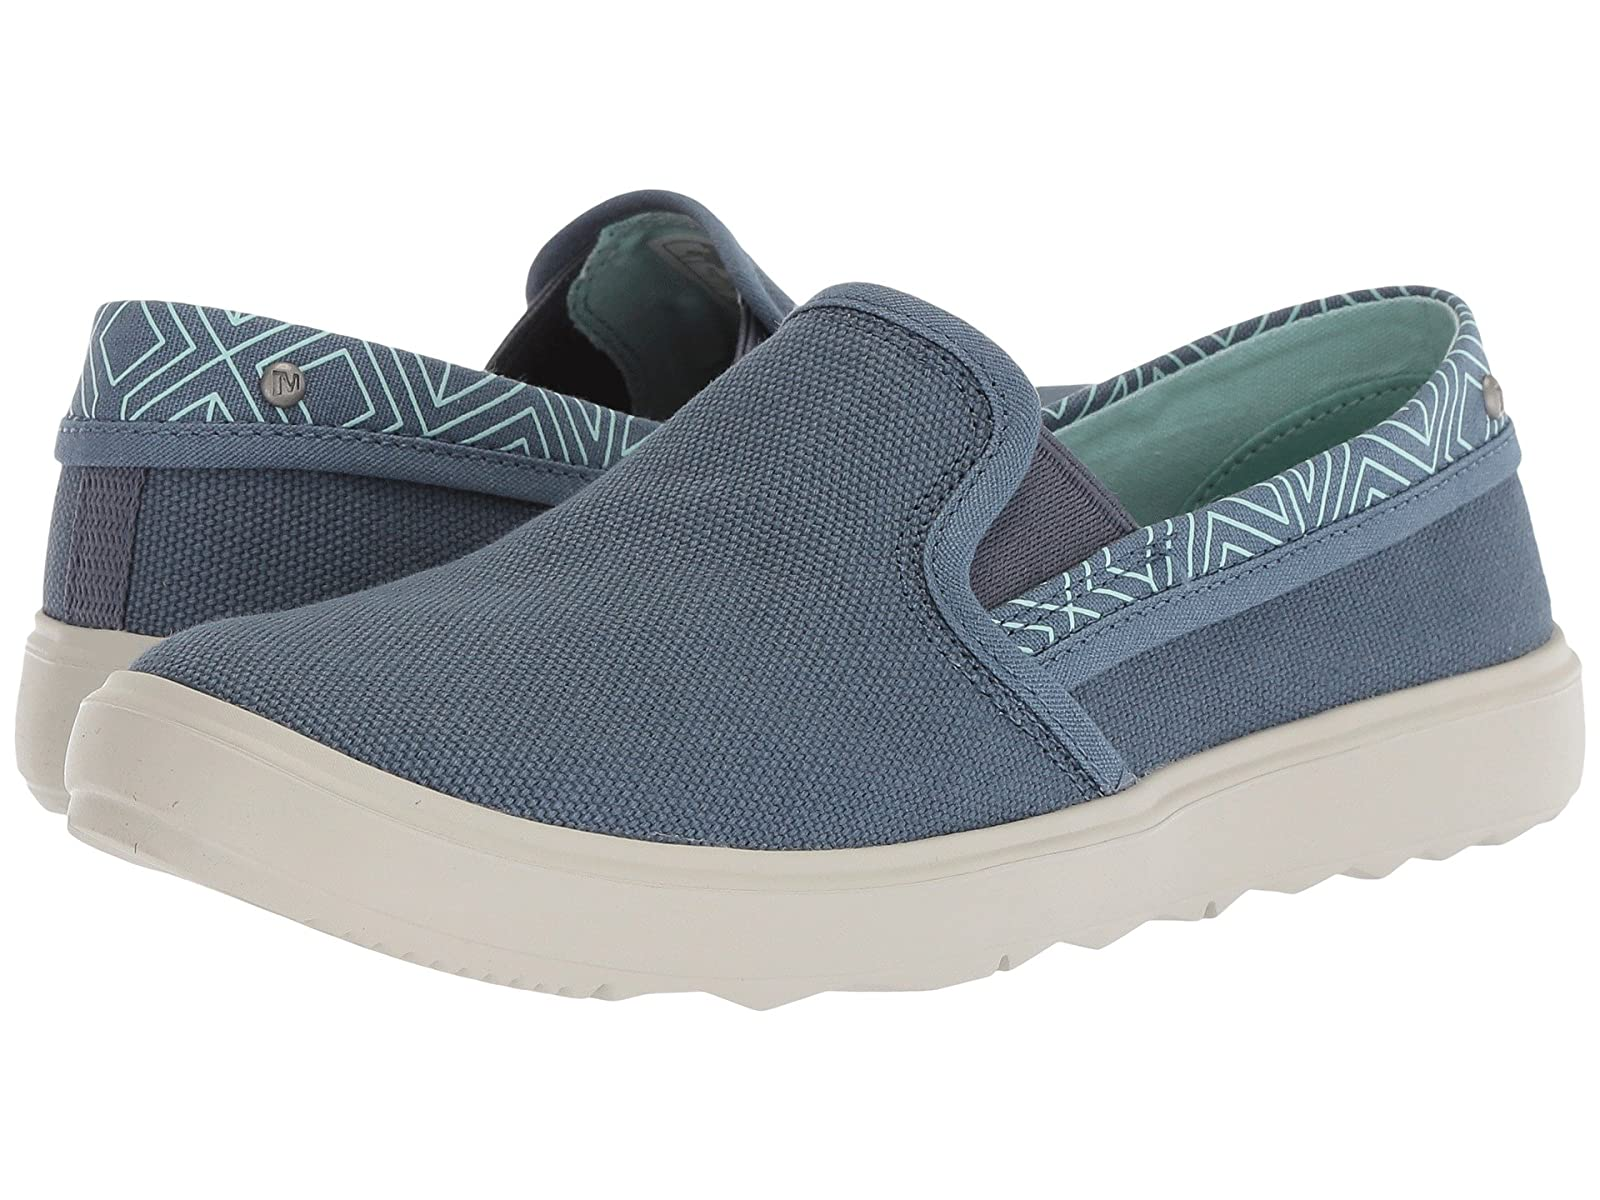 Merrell Around Town City Moc CanvasCheap and distinctive eye-catching shoes